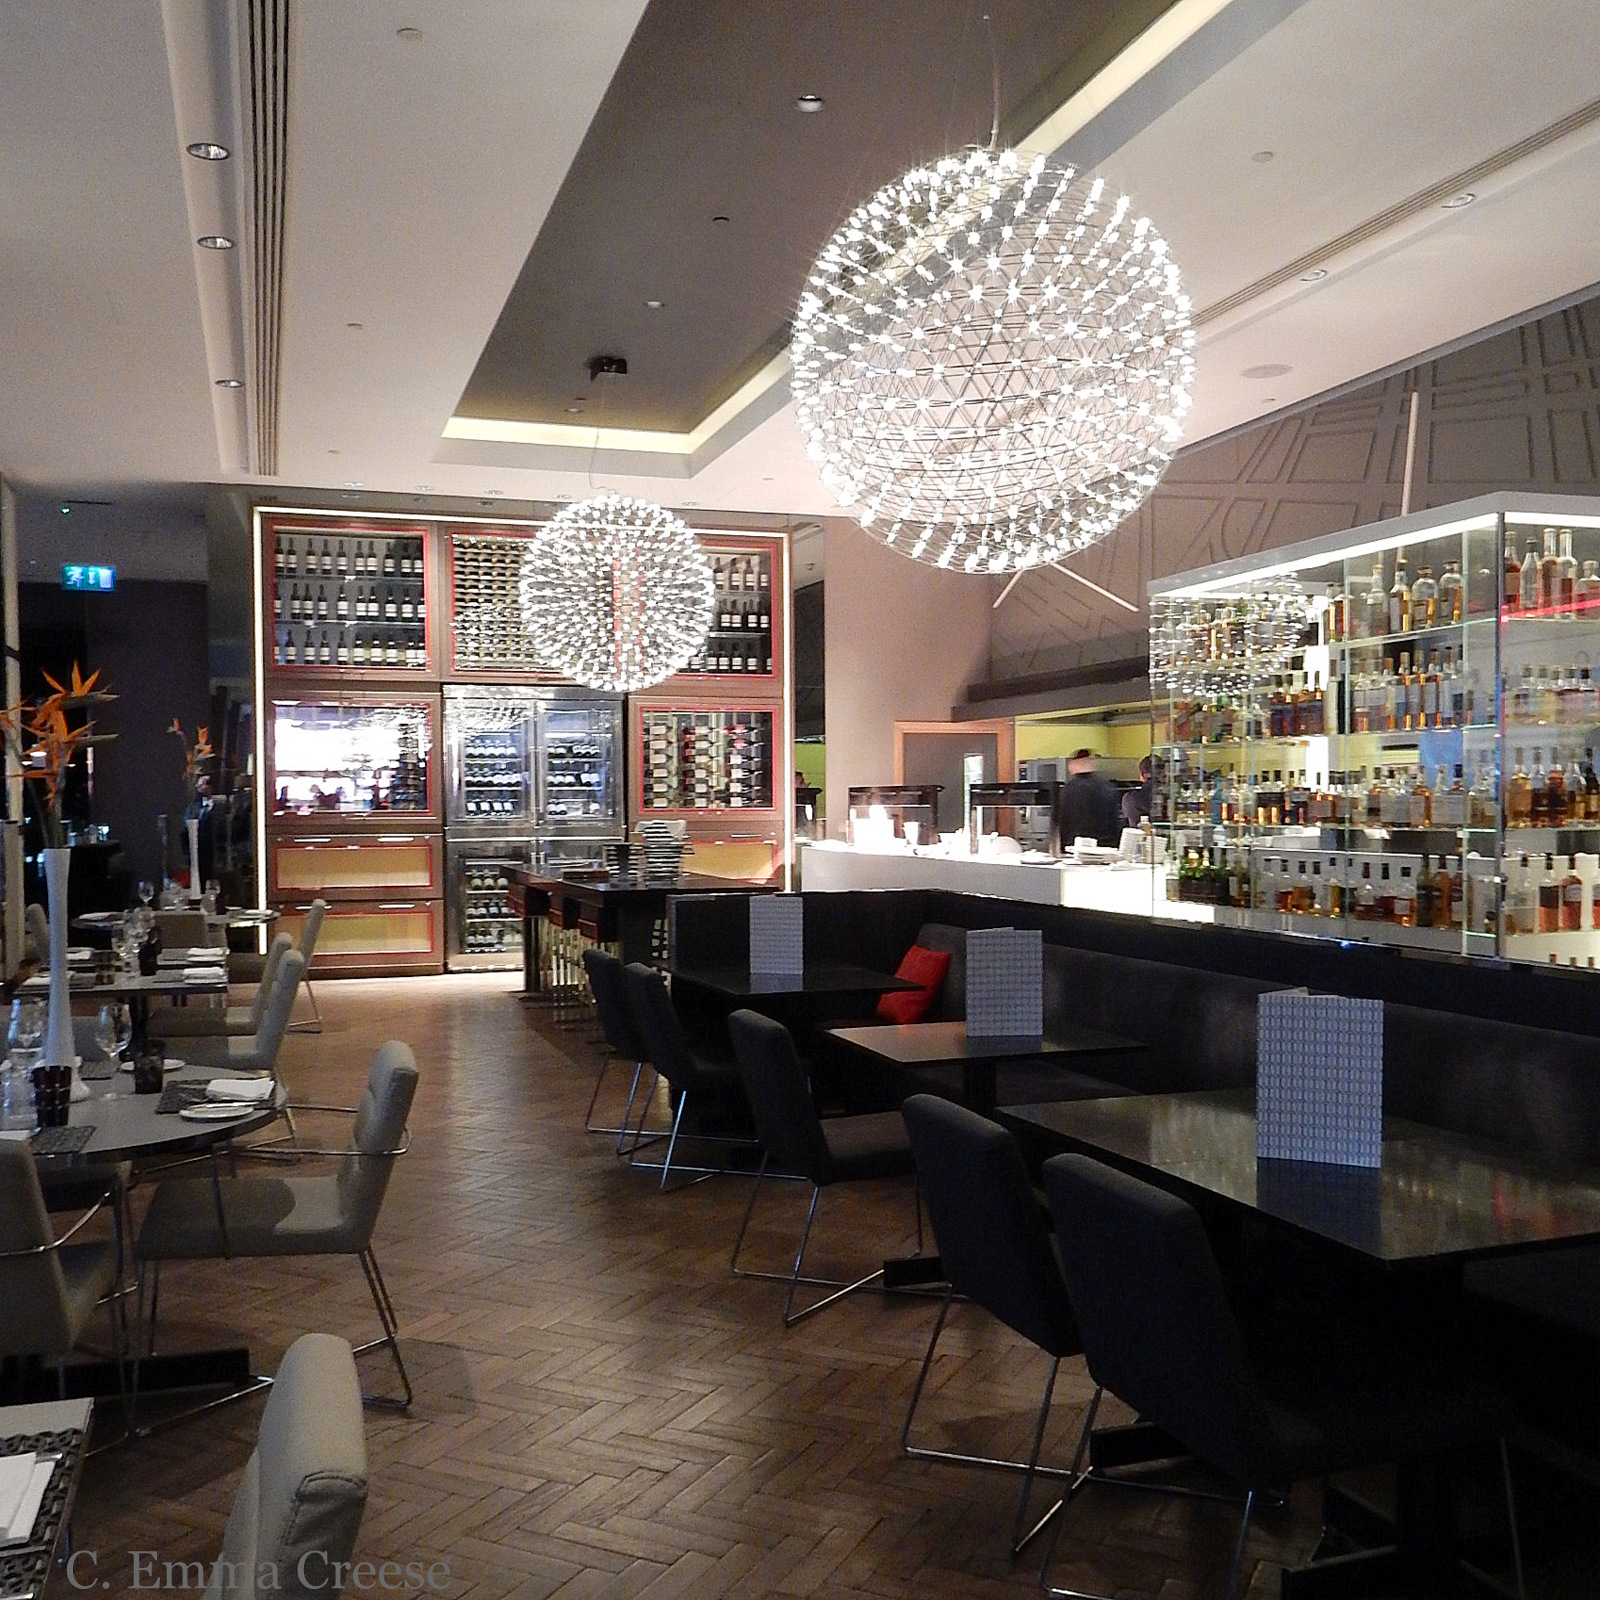 Discovering the Pullman Accor Hotel in Kings Cross